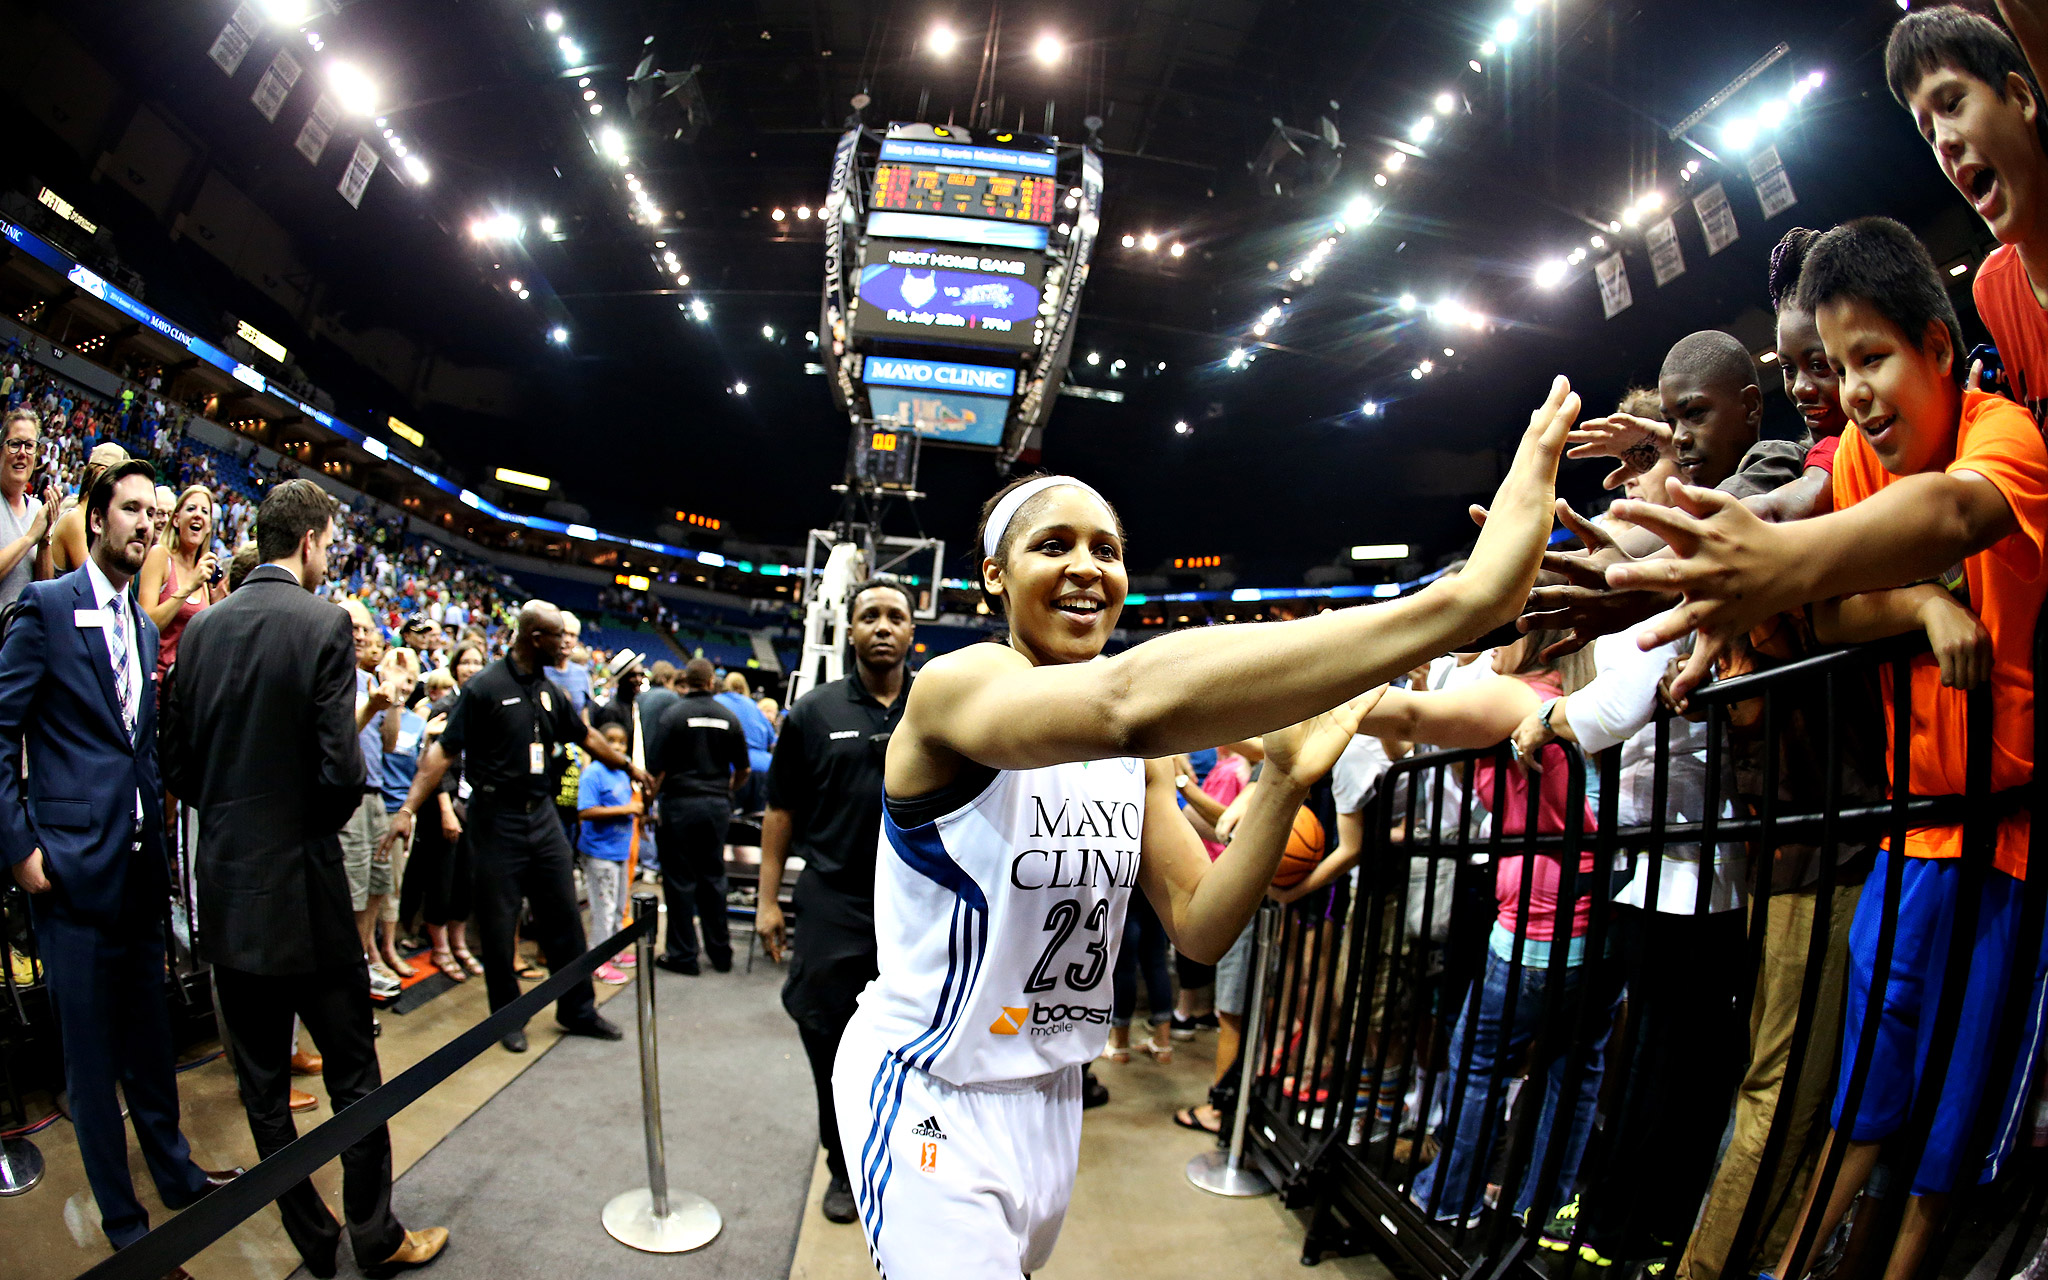 The Minnesota Lynx's Maya Moore celebrates with fans after a WNBA game against the Atlanta Dream at Target Center in Minneapolis. Moore scored 48 points, the second most ever in the league, to help the Lynx win 112-108 in double-overtime.